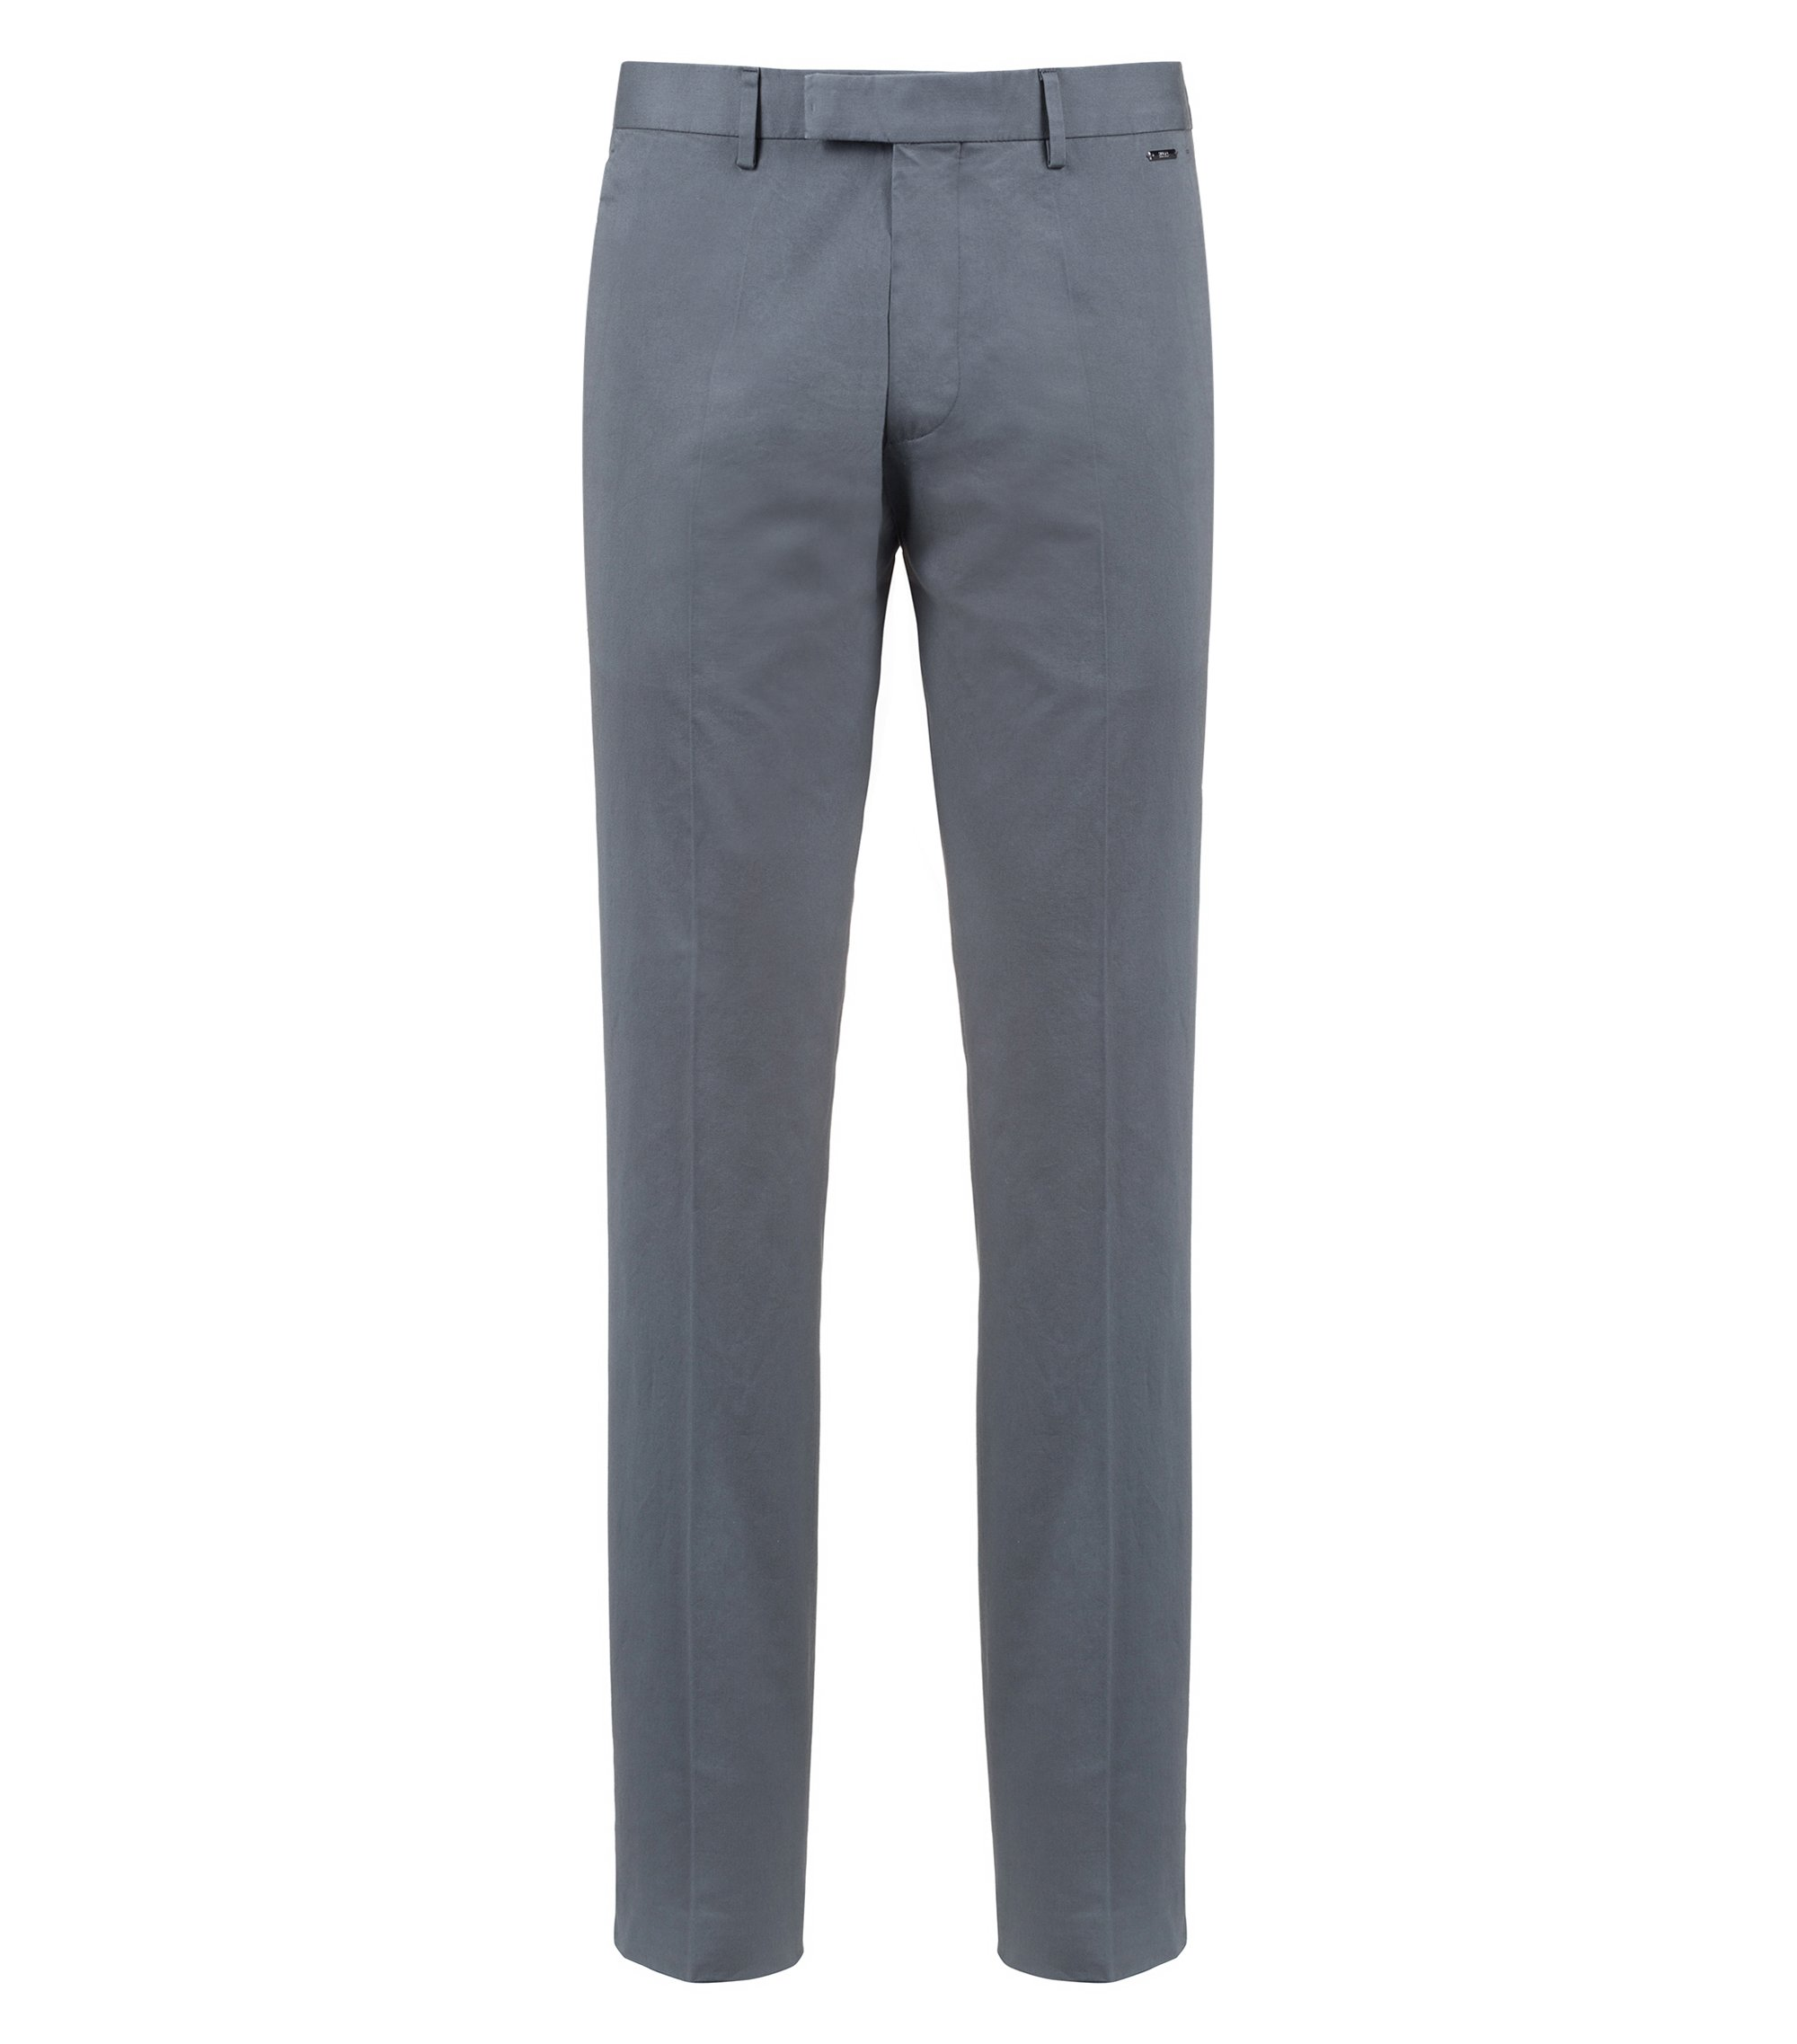 Pantalon Regular Fit en coton stretch lavé, Gris sombre